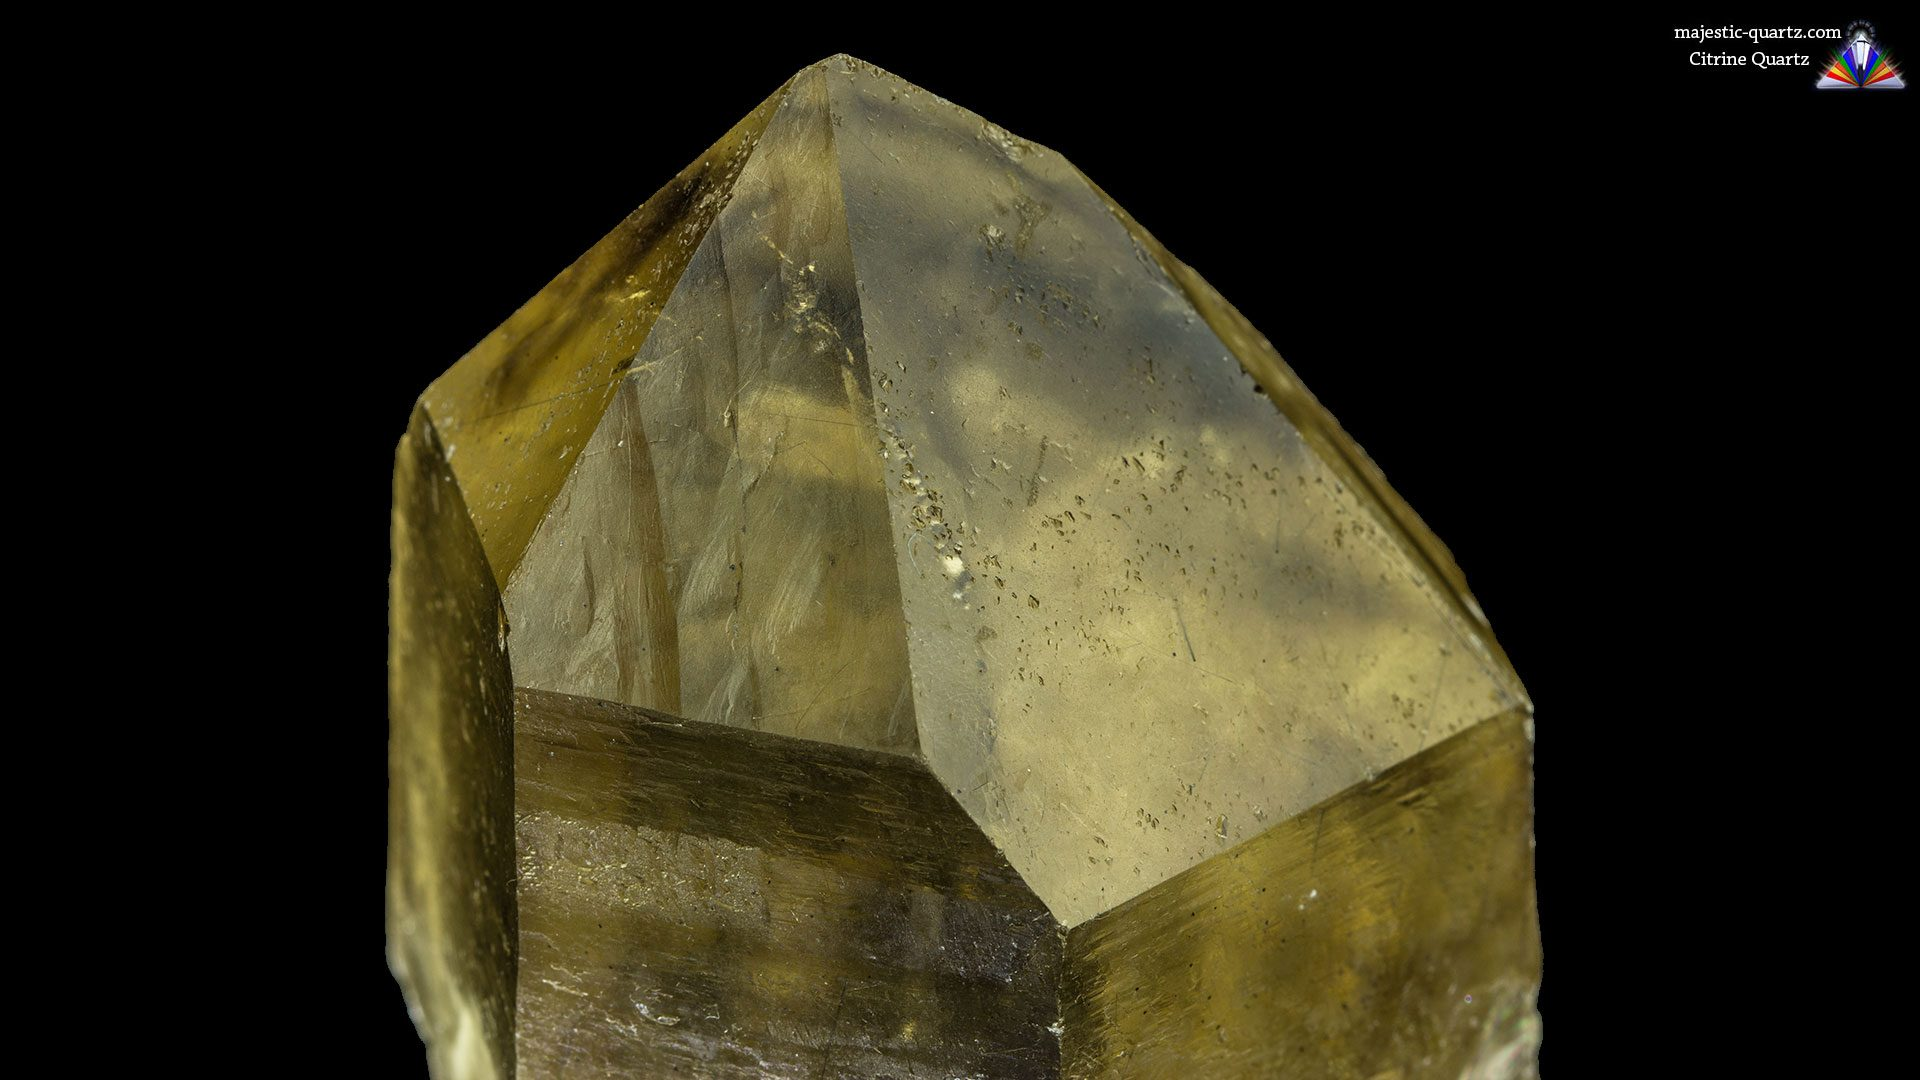 Citrine Quartz Properties and Meaning - Photograph by Anthony Bradford